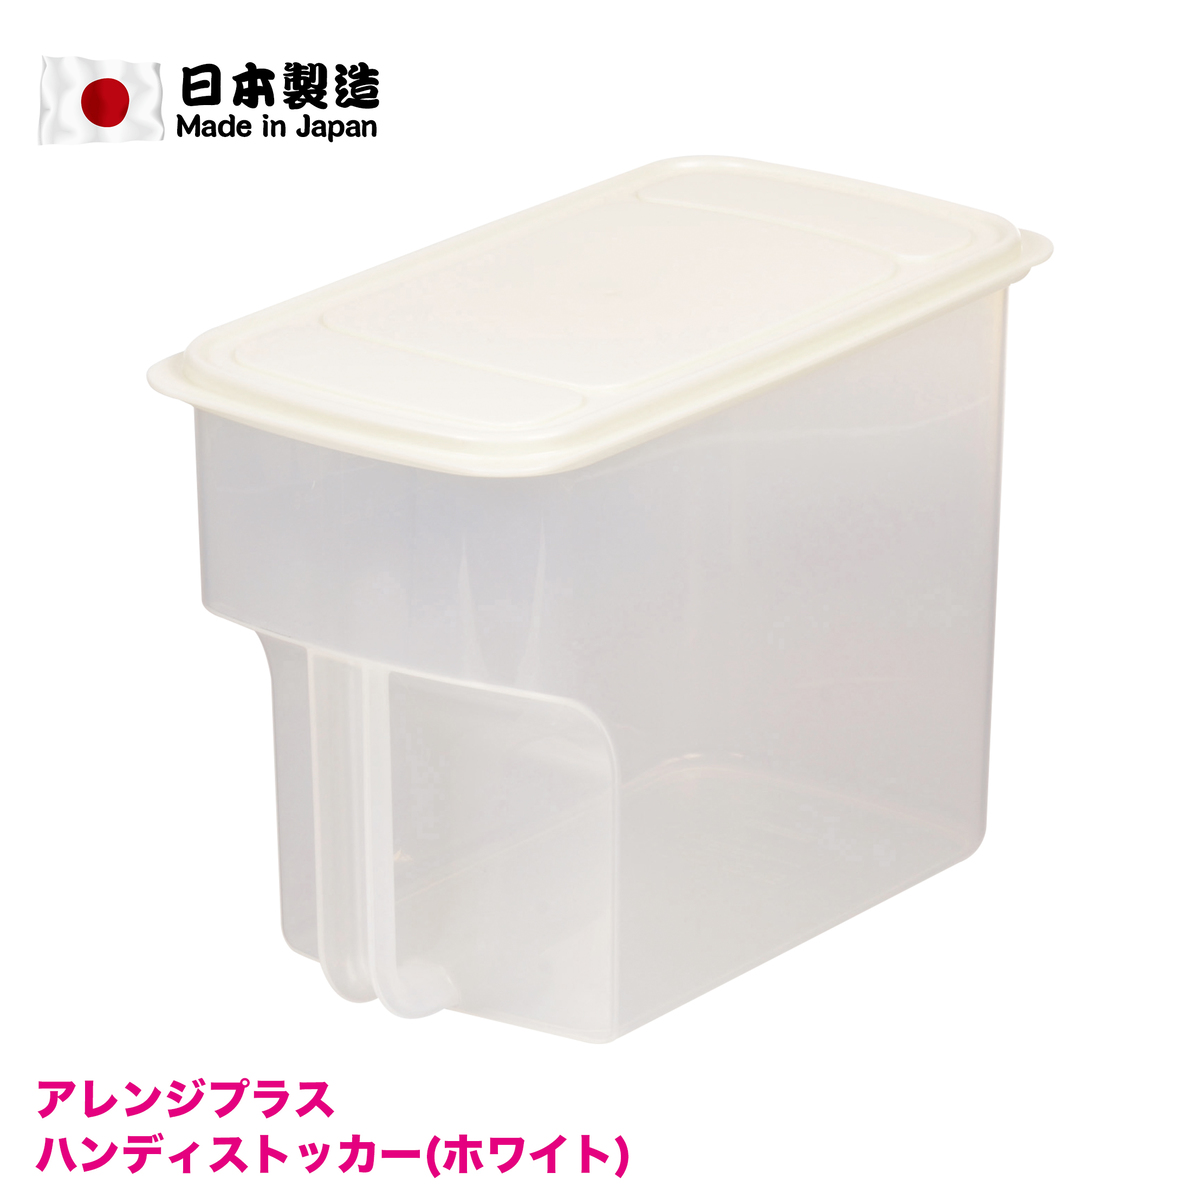 H-1768 Storage Container - WH